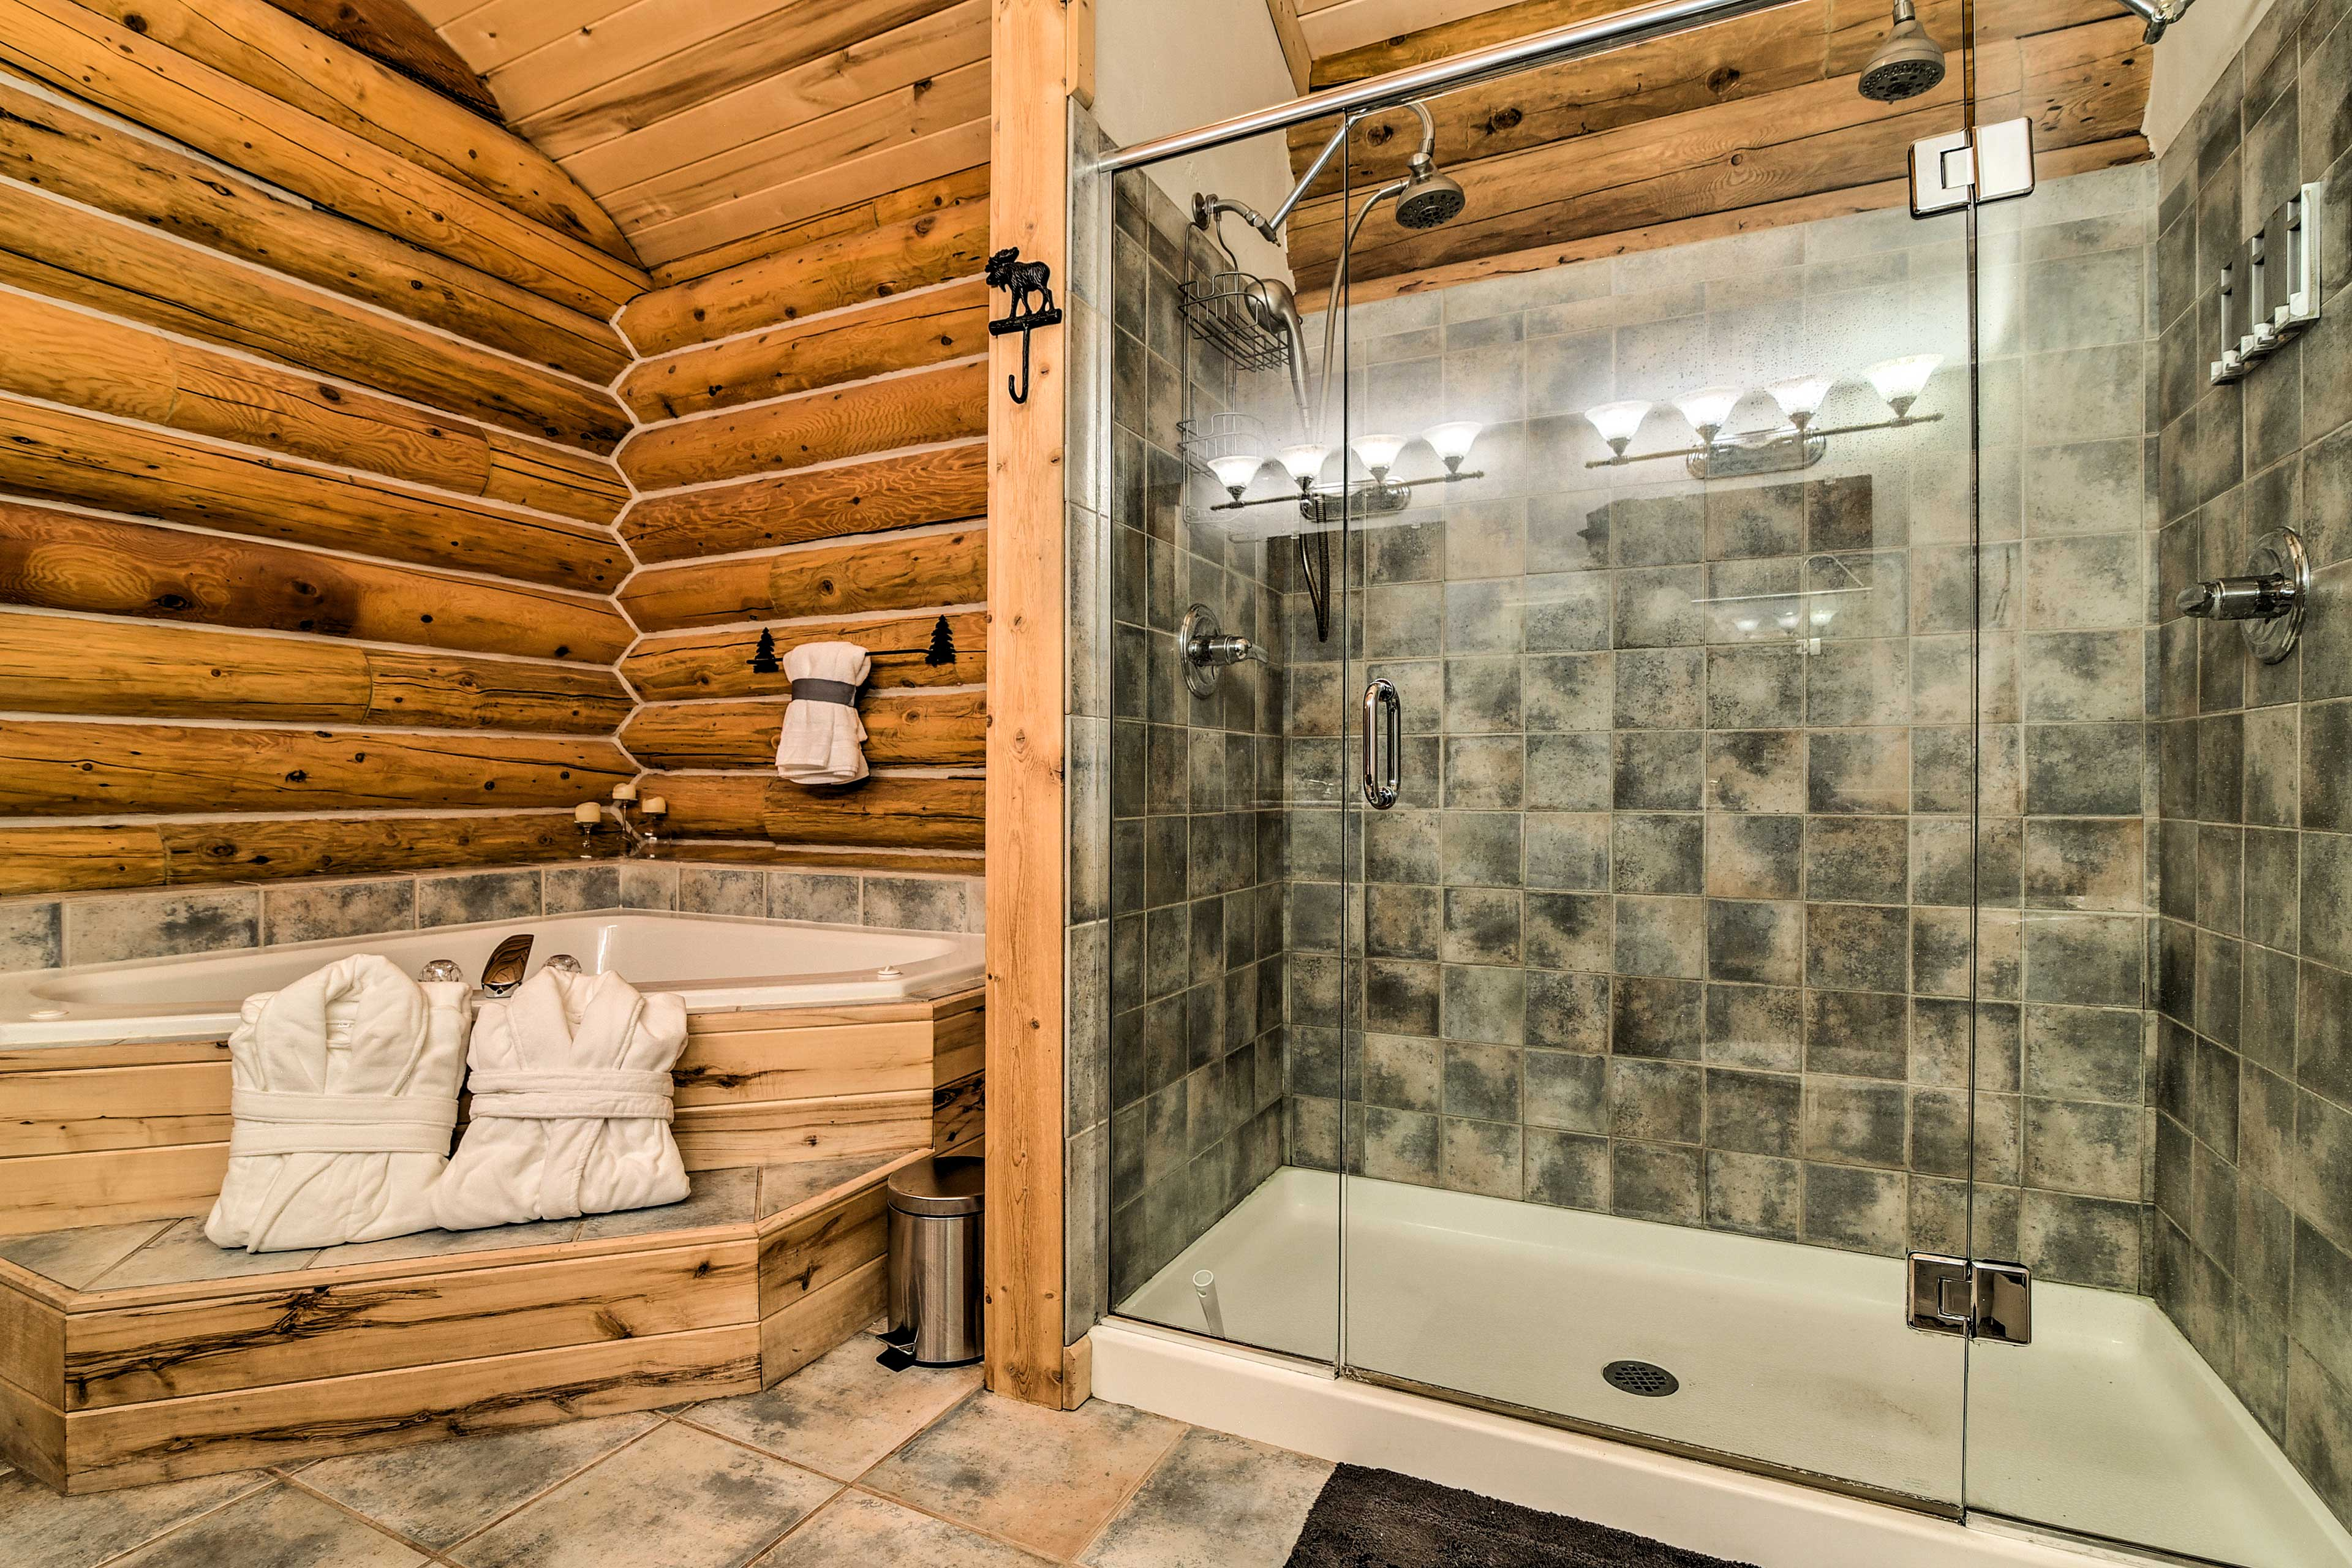 Rinse off in the jetted tub and double head walk-in shower.